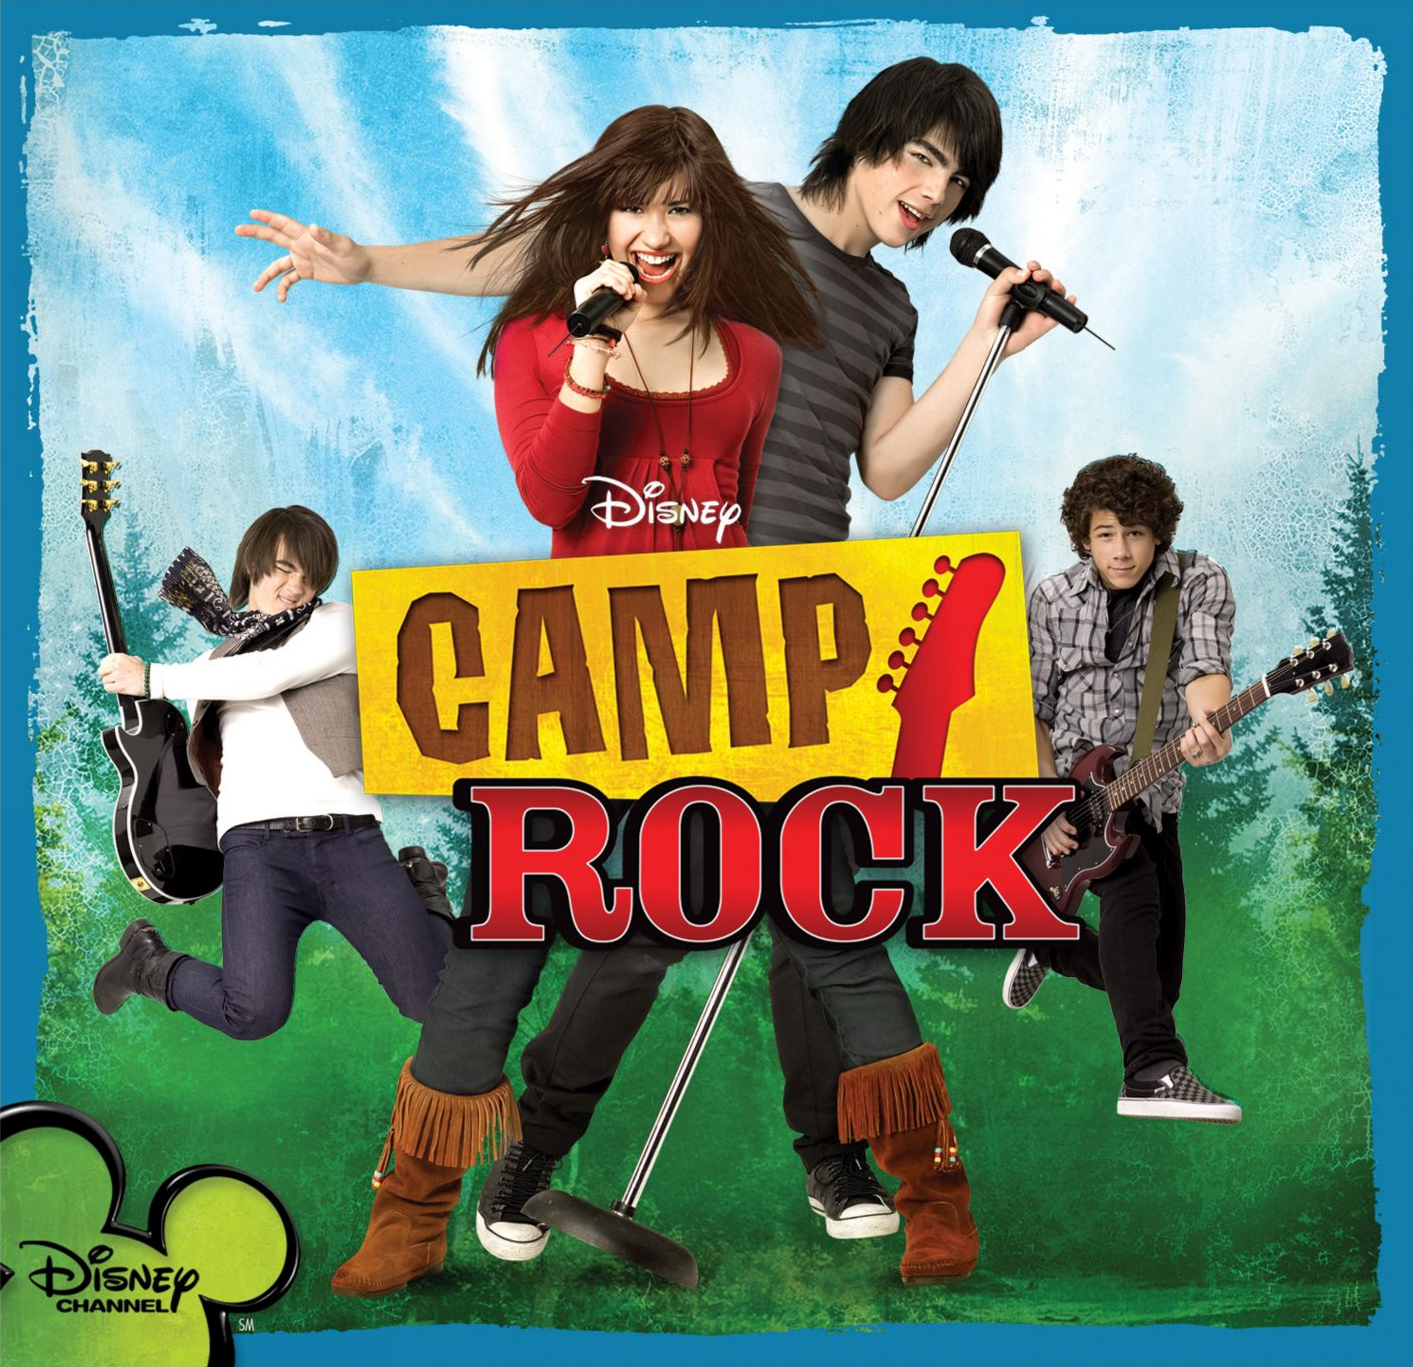 buddhist singles in rock camp Meet rock camp singles online & chat in the forums dhu is a 100% free dating site to find personals & casual encounters in rock camp.